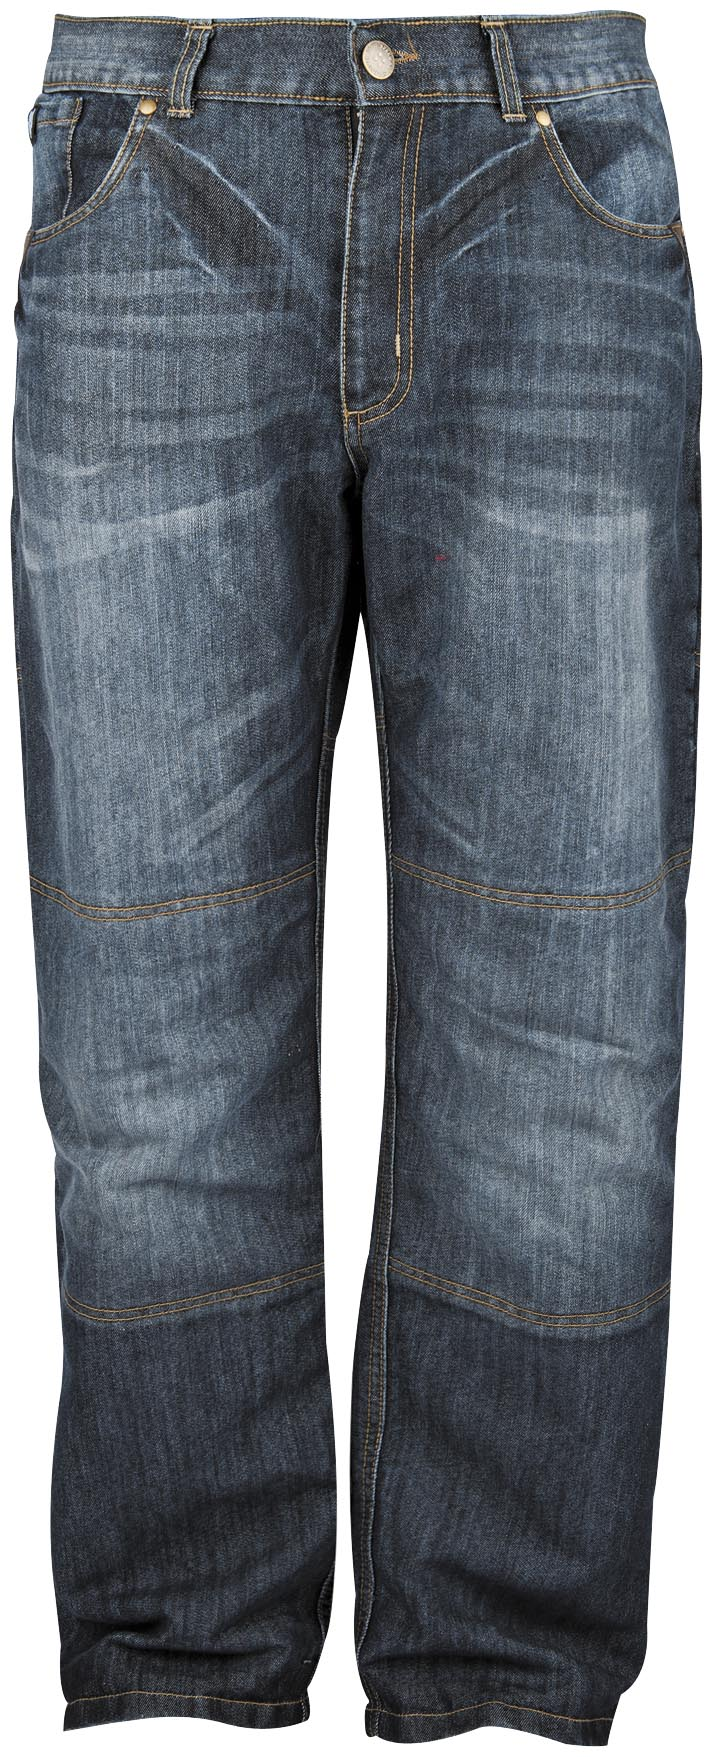 Men's Run with the Bulls Moto Jeans